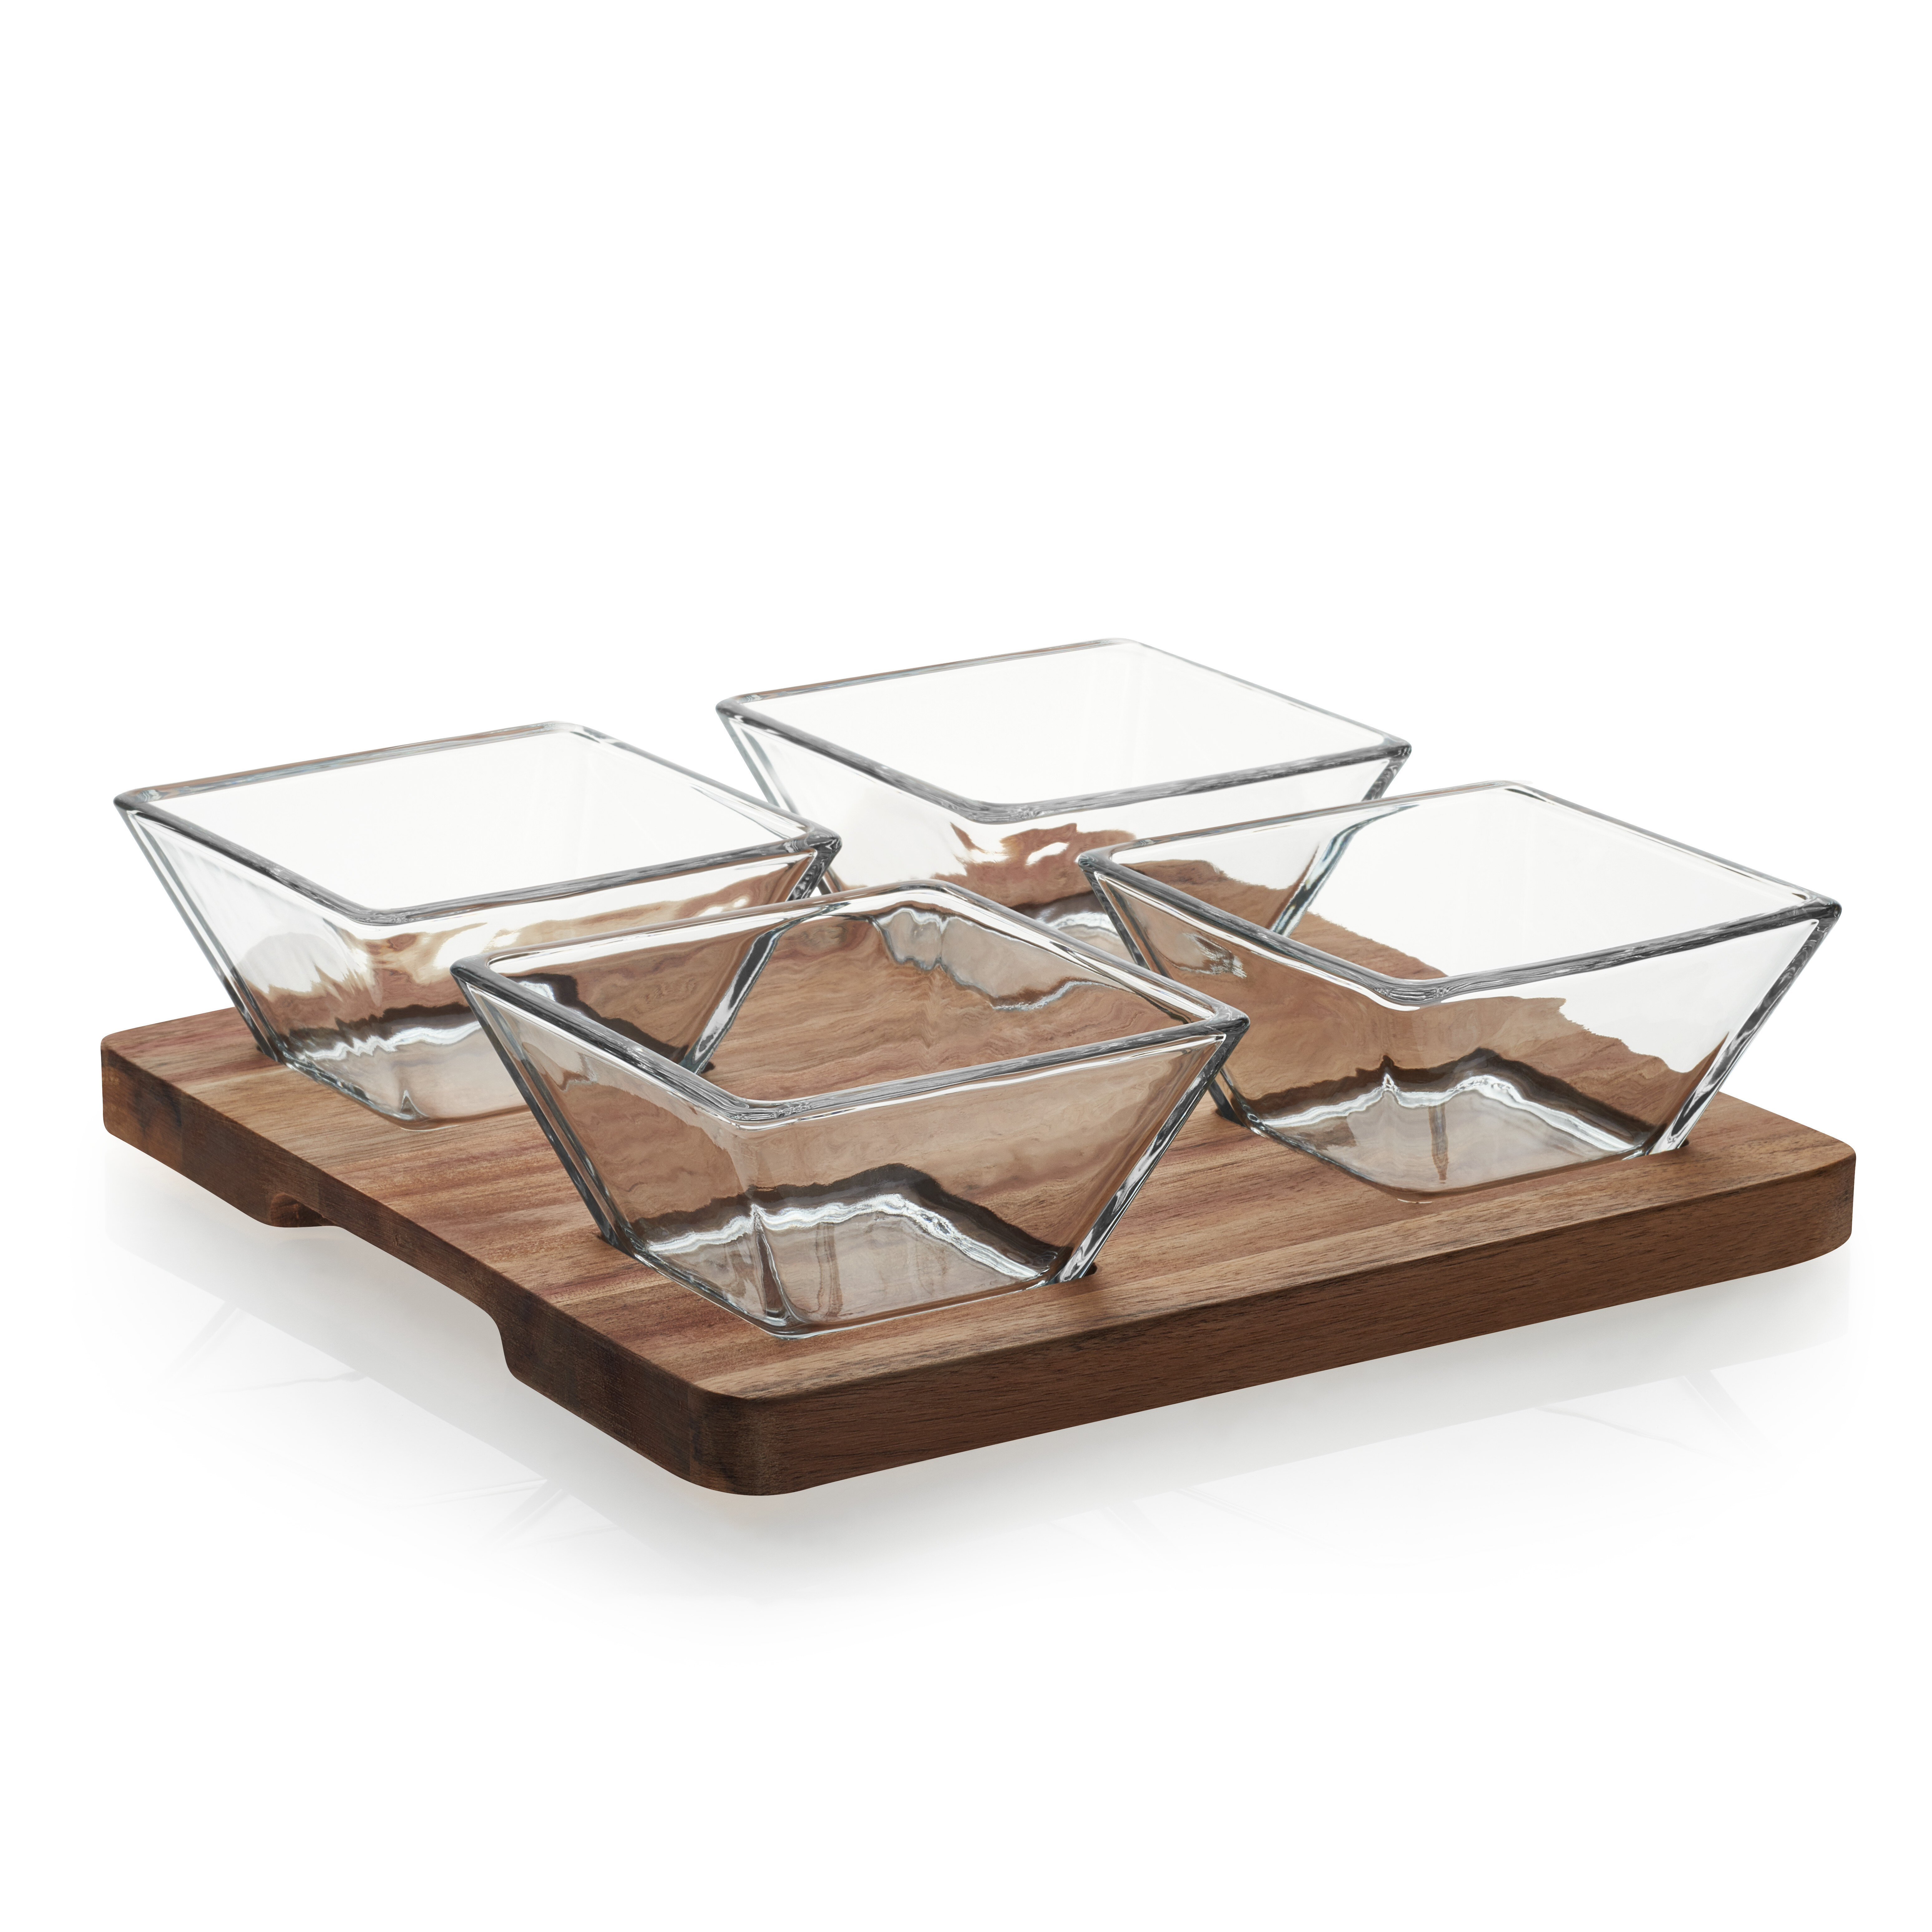 Wooden Serving Dishes You Ll Love In 2021 Wayfair